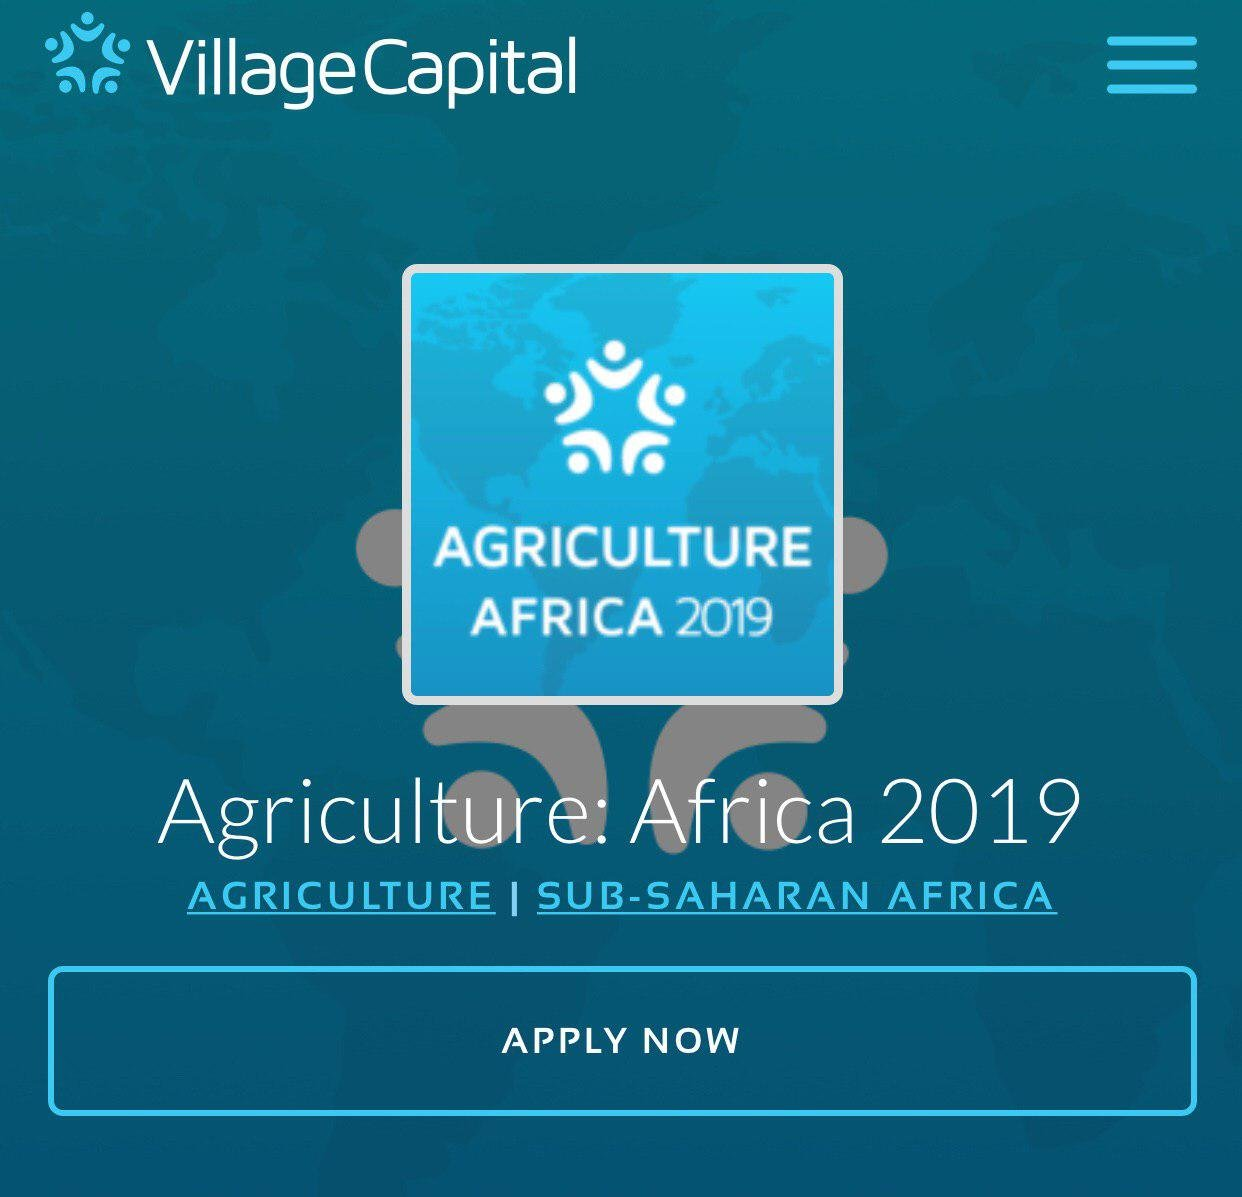 Assess A $5,000 Grant for Agriculture Ventures